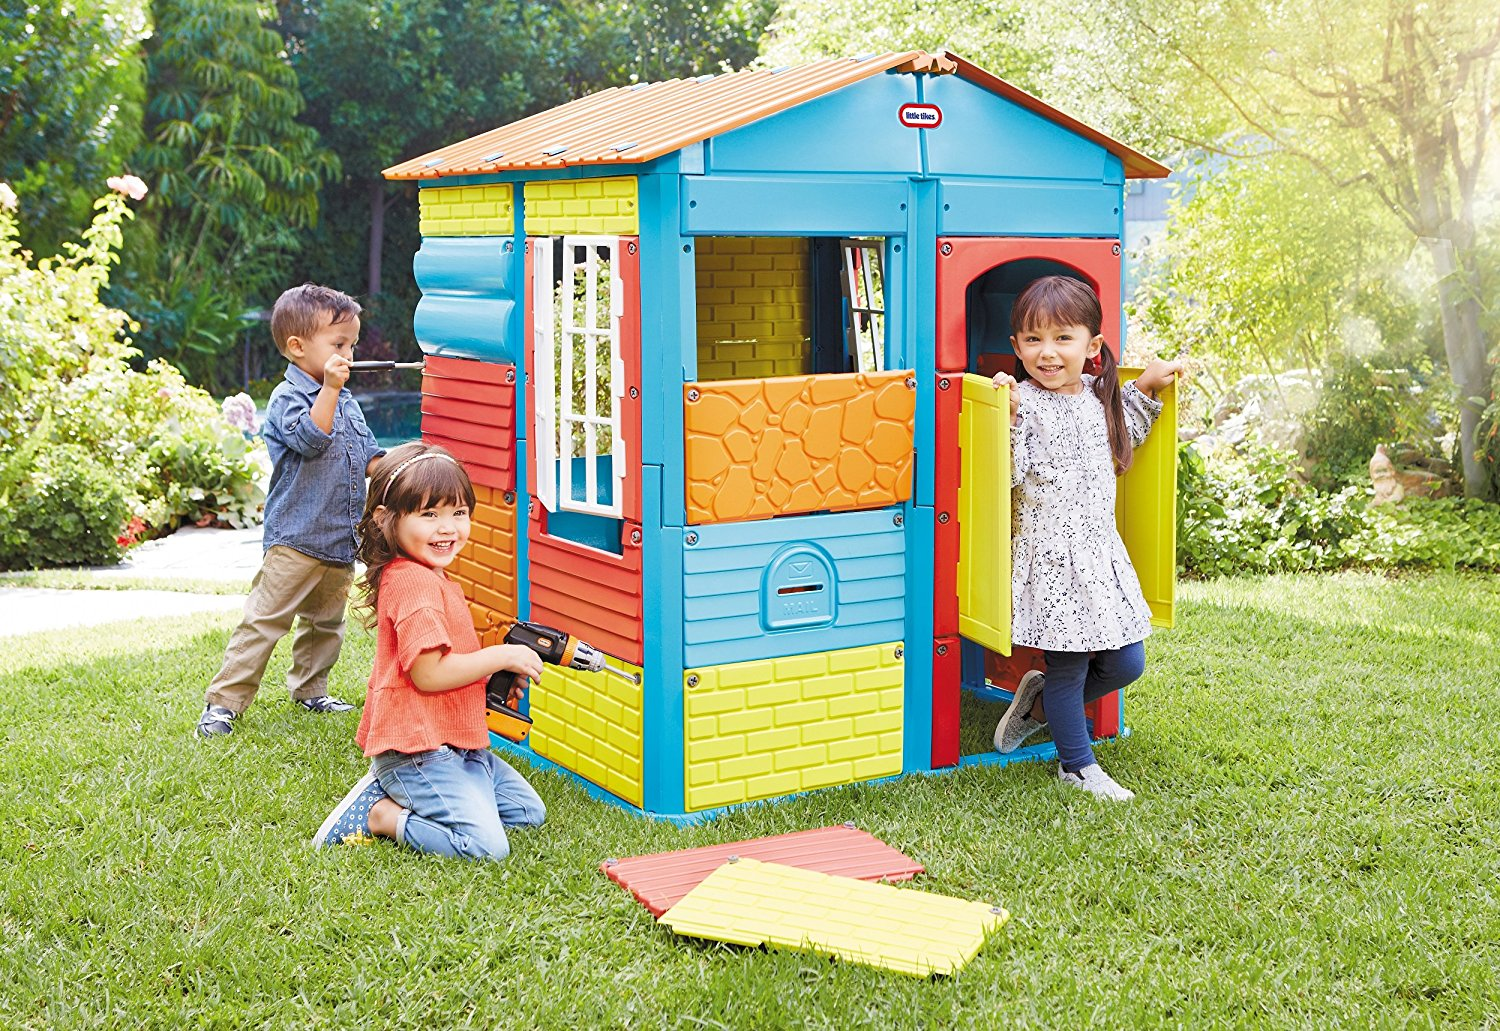 Top Kids Outdoor Playhouses For the Backyard   Amazing ...